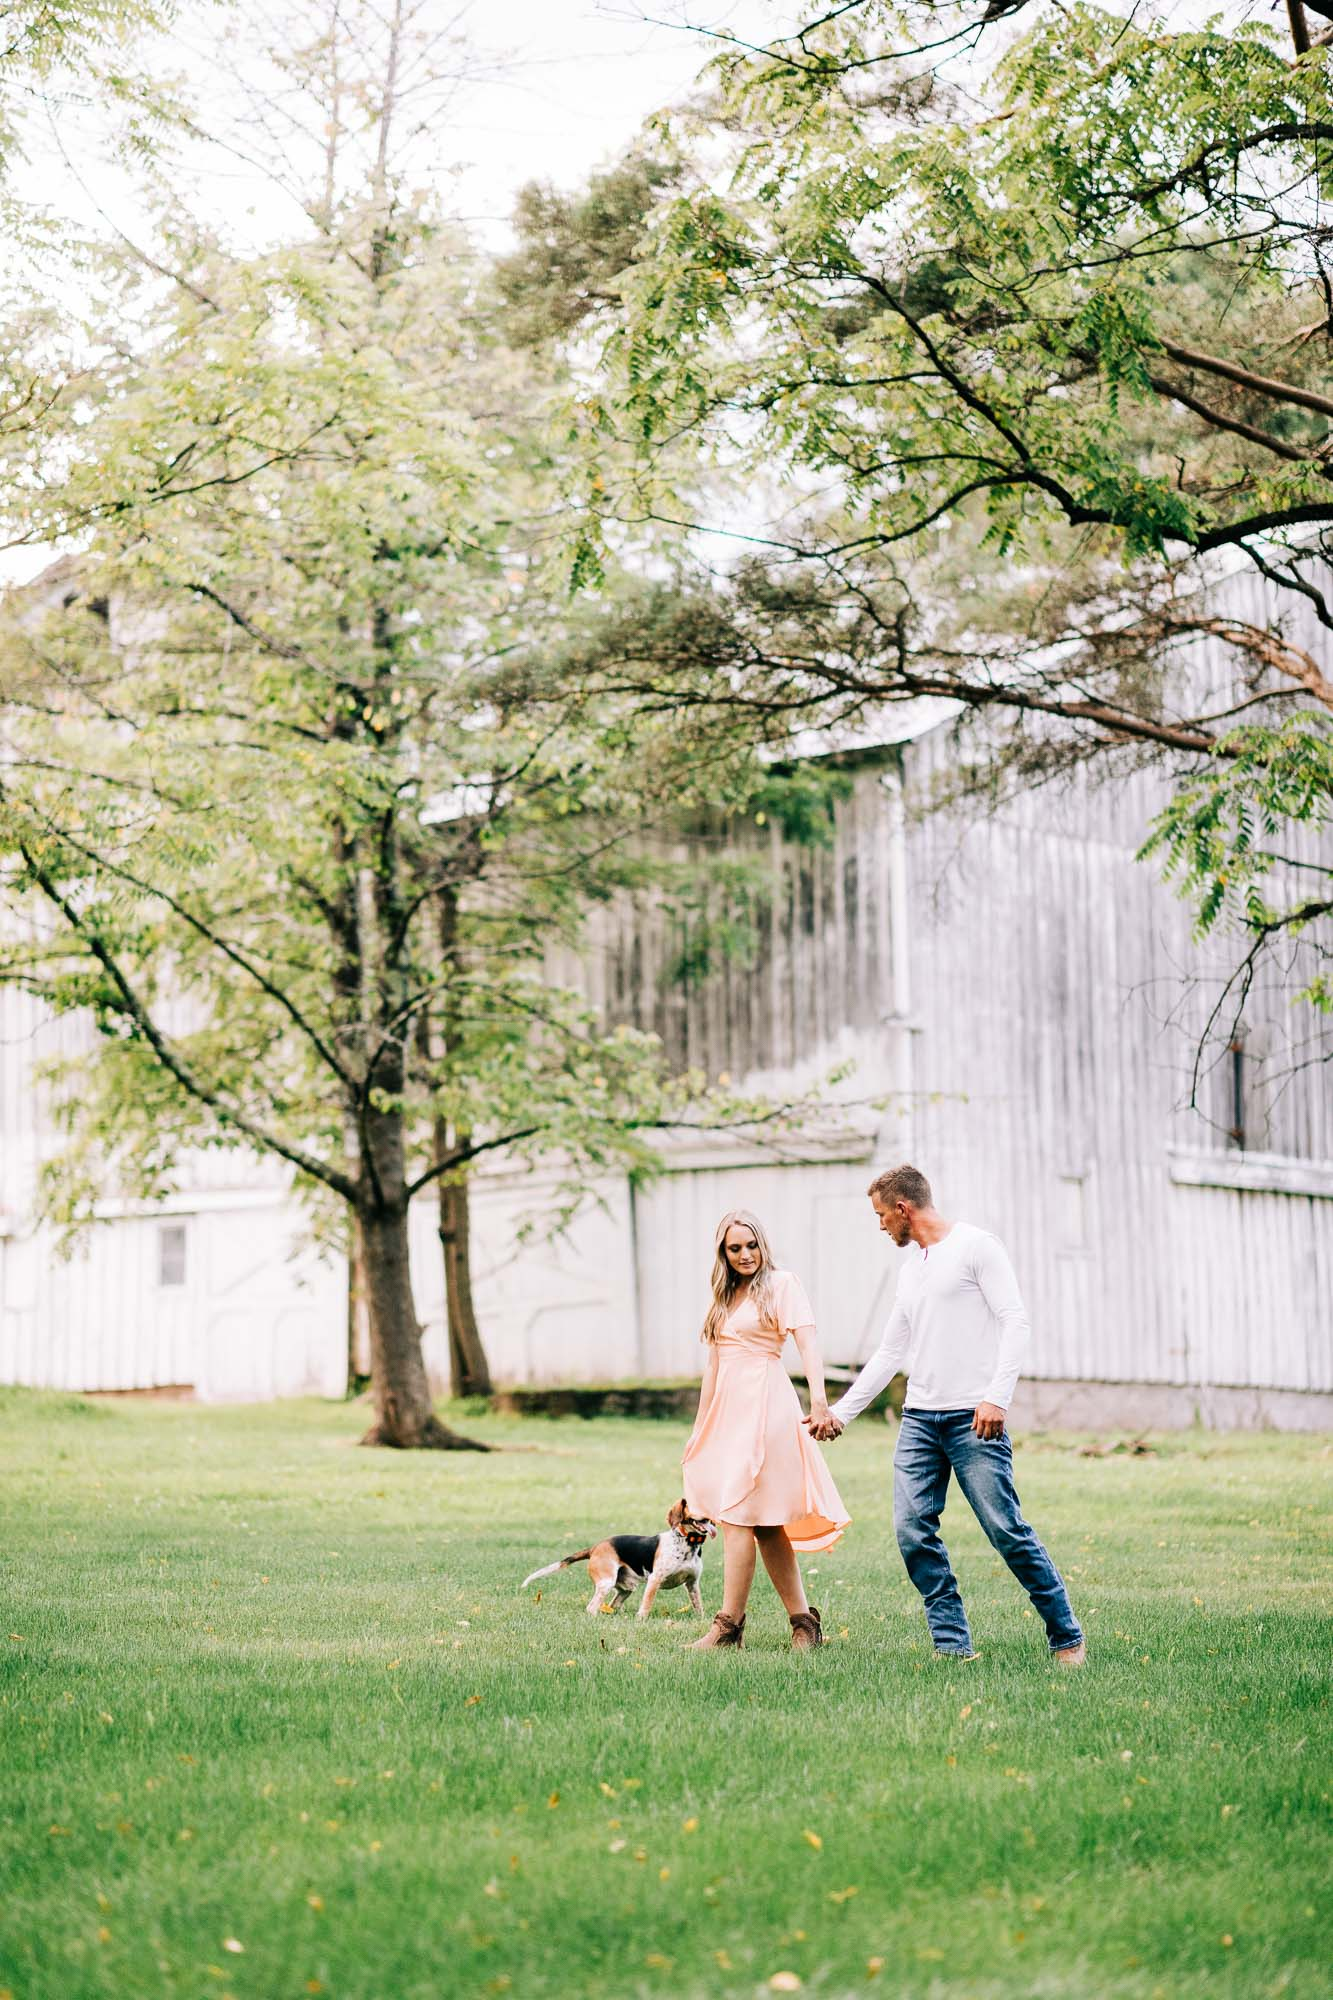 Sweet-valley-engagement-session-8666.jpg